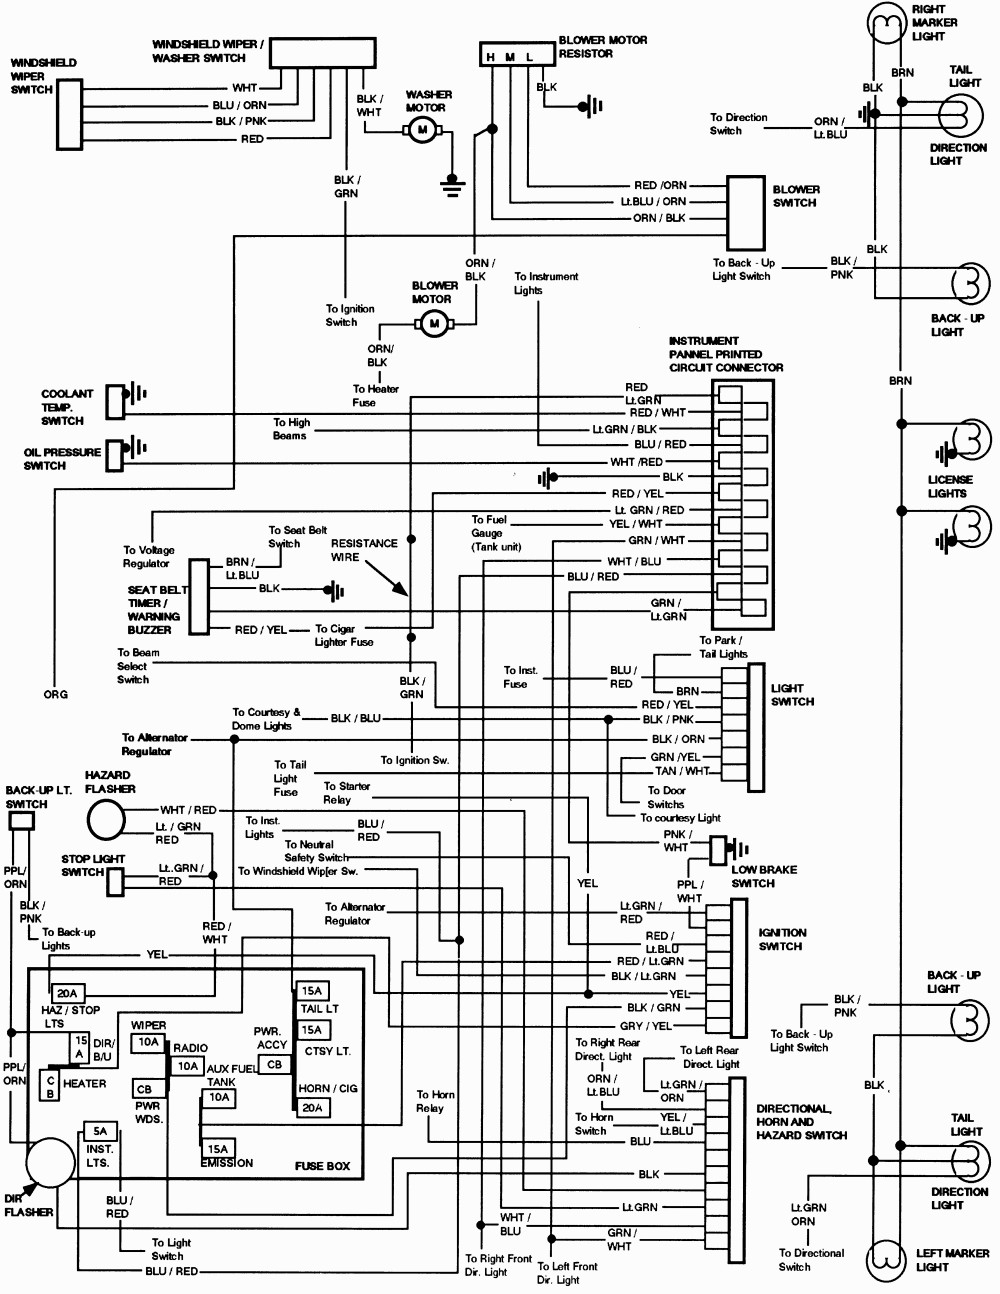 2005 ford stx f150 radio wiring diagram